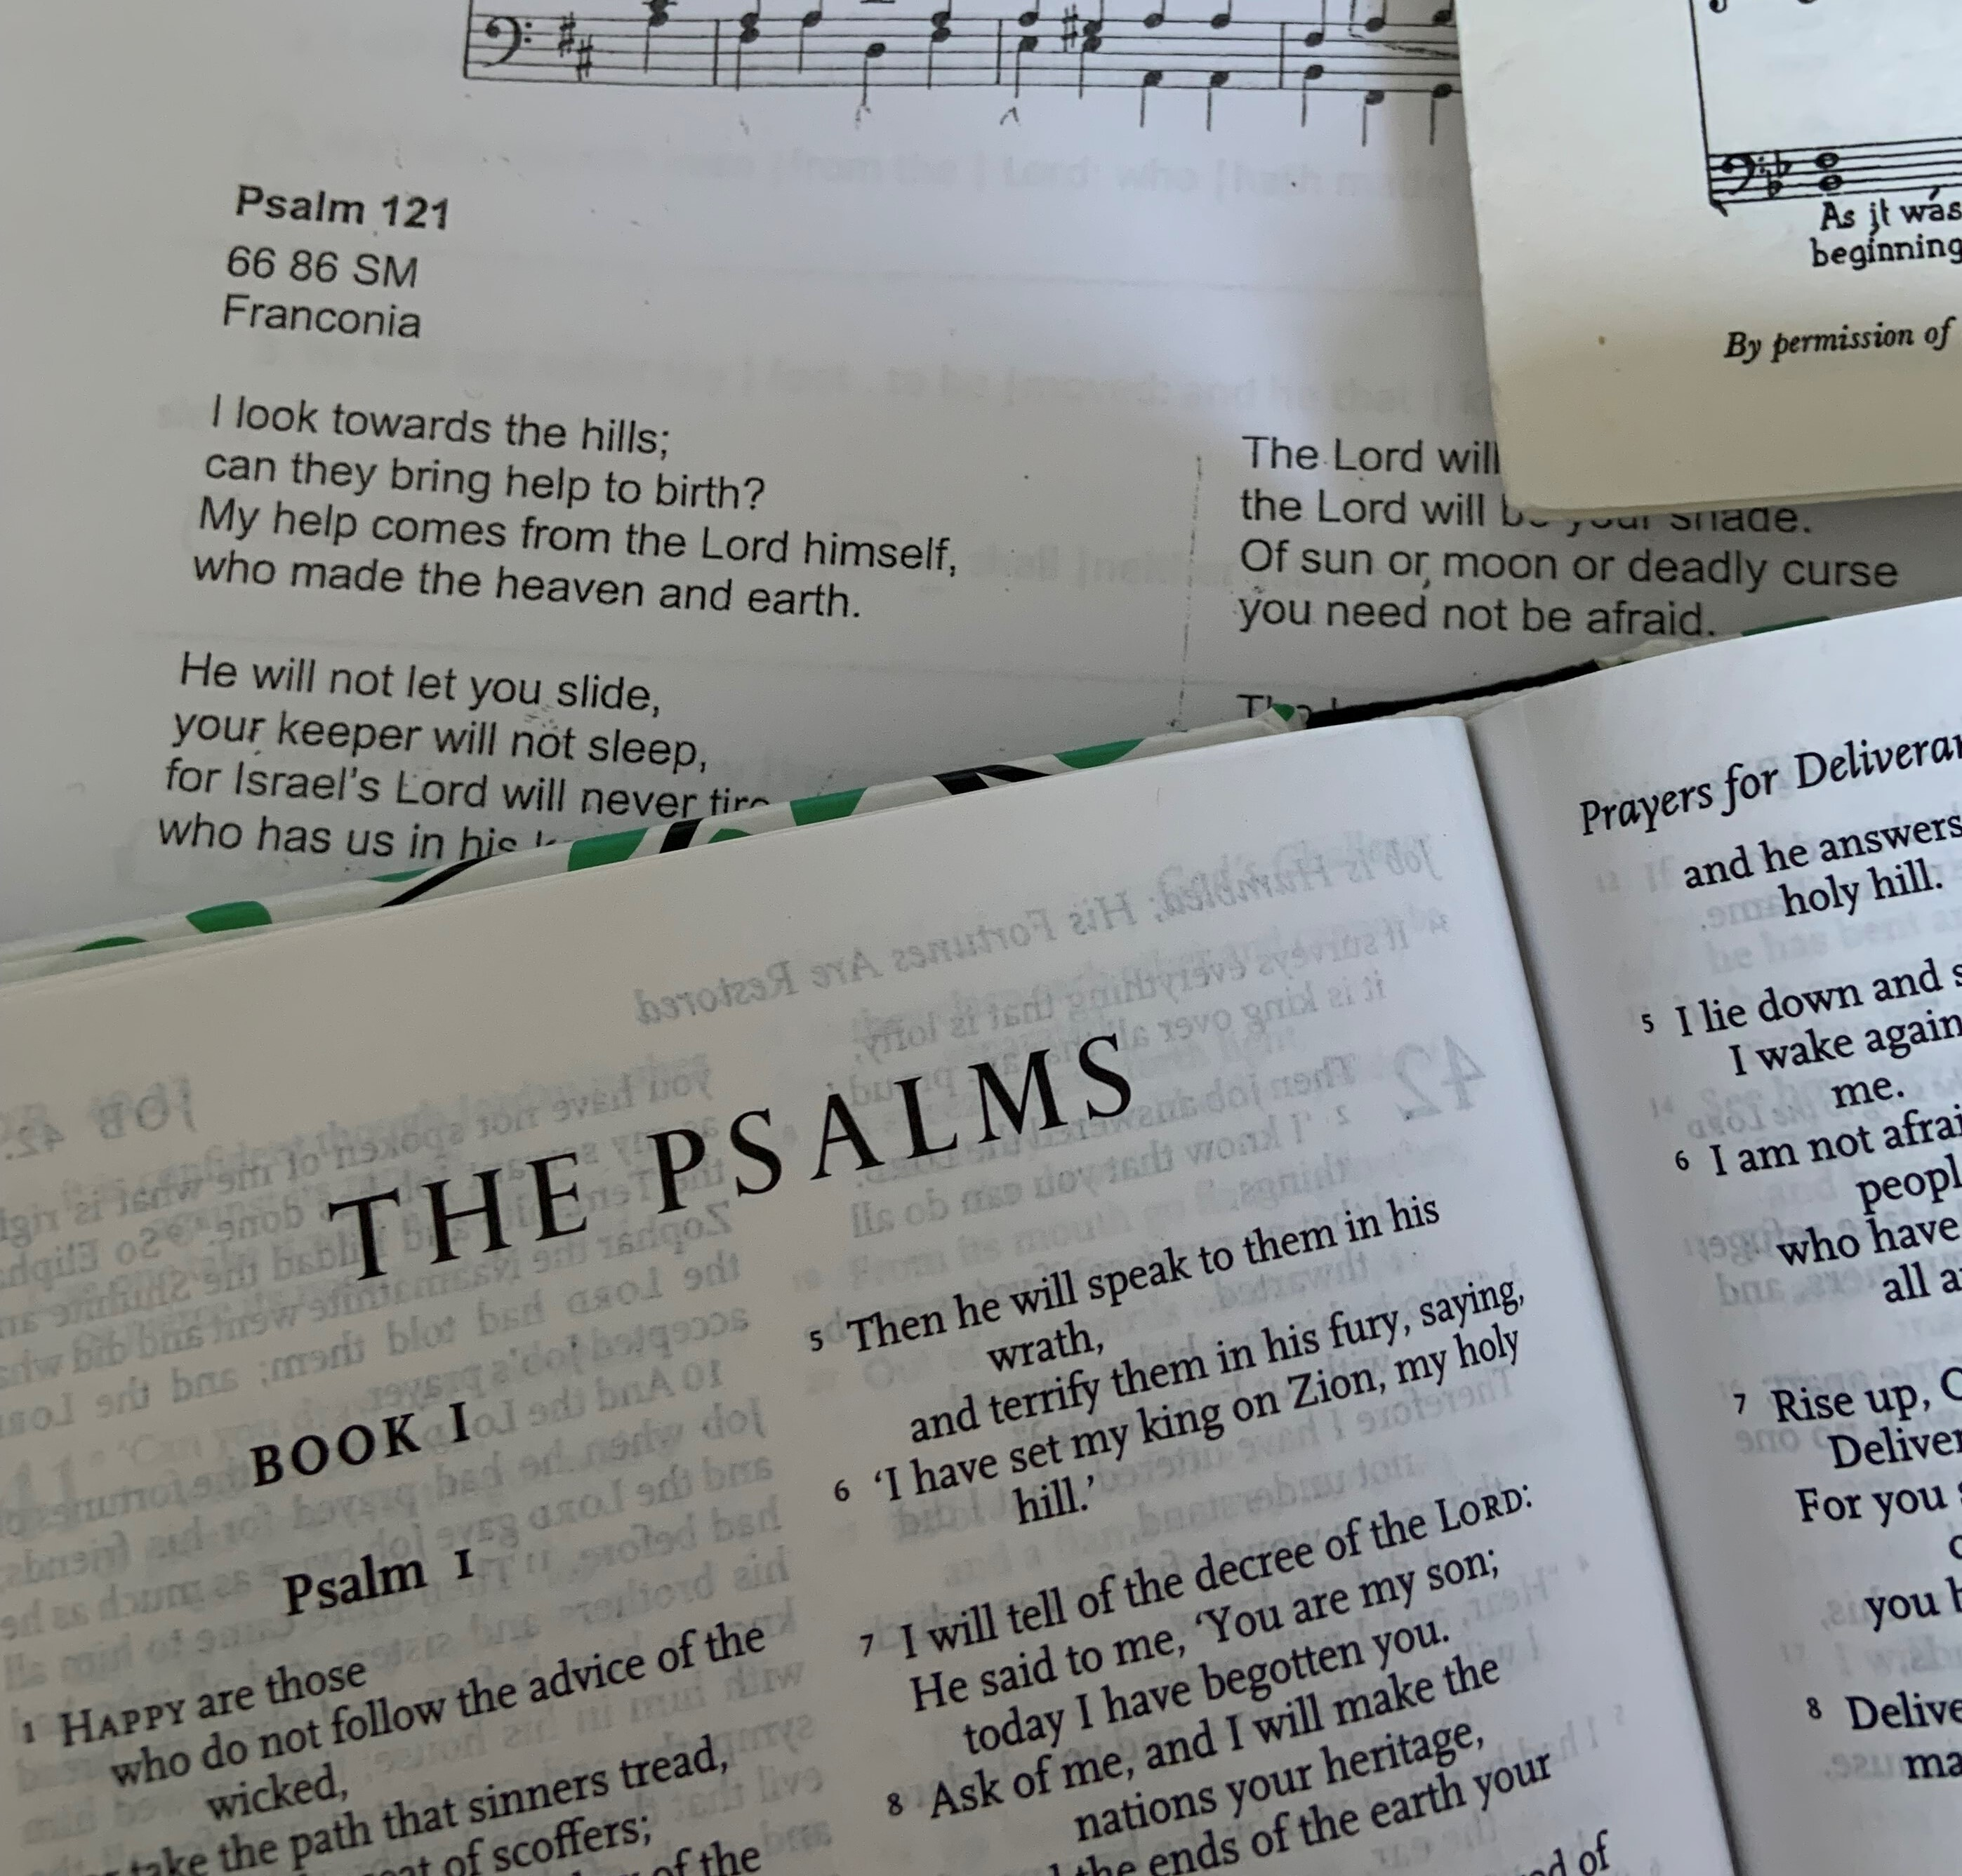 The book of psalms in a bible and psalms set to music